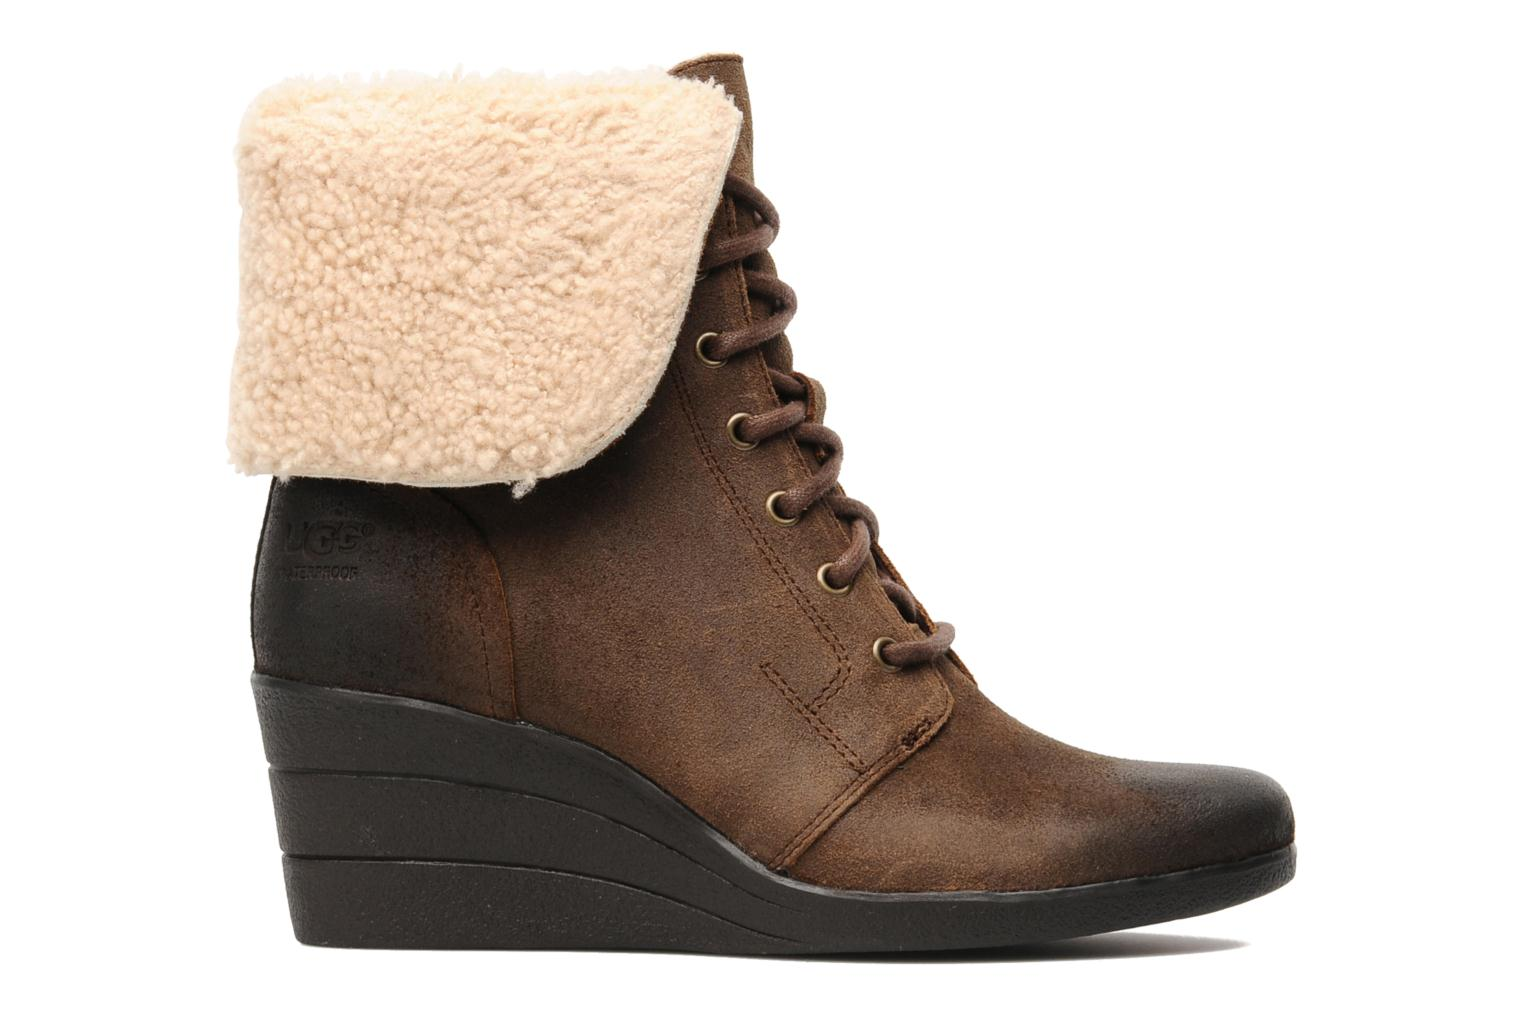 5a6d88a91b96 Ugg Zea Ankle Boots Uk